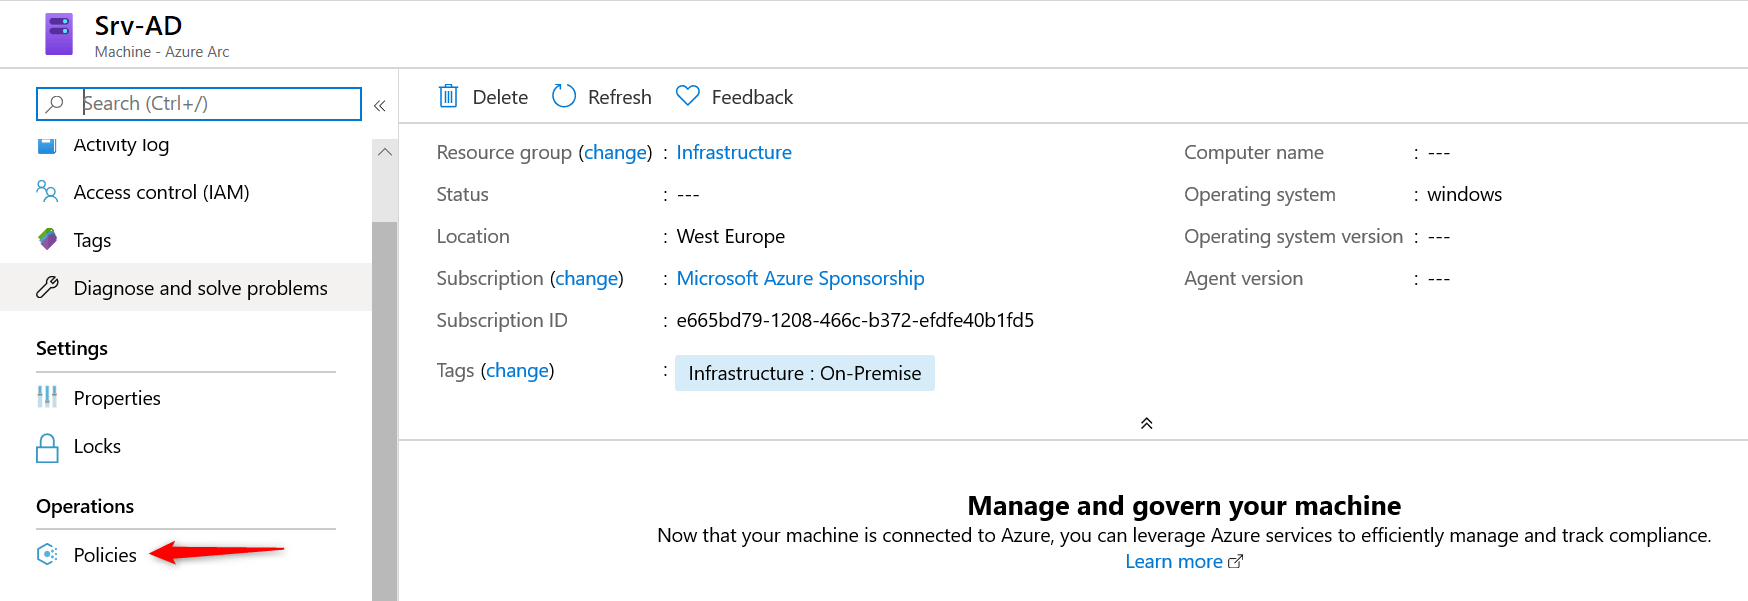 Properties added of Server added on Azure Arc